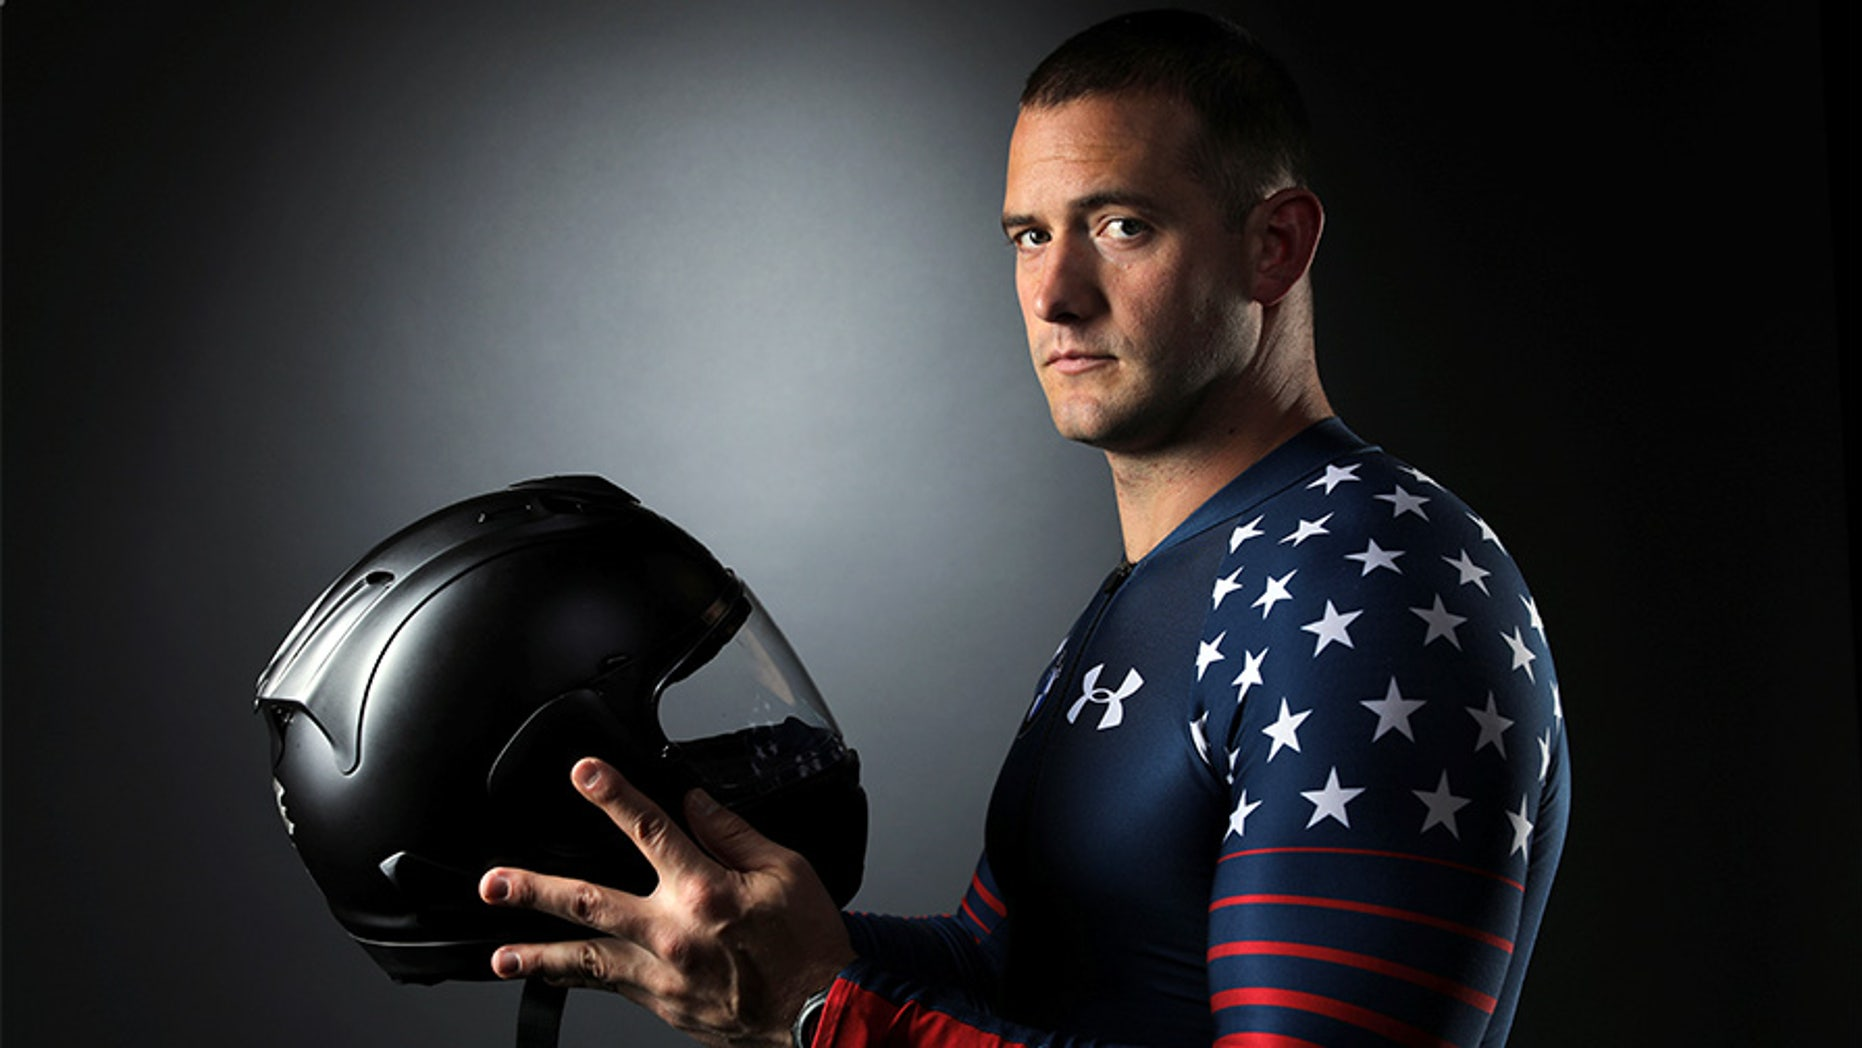 Sgt. Justin Olsen, a member of the U.S. Olympic bobsled team, underwent surgery to have his appendix removed on Monday, according to U.S. bobsled officials.